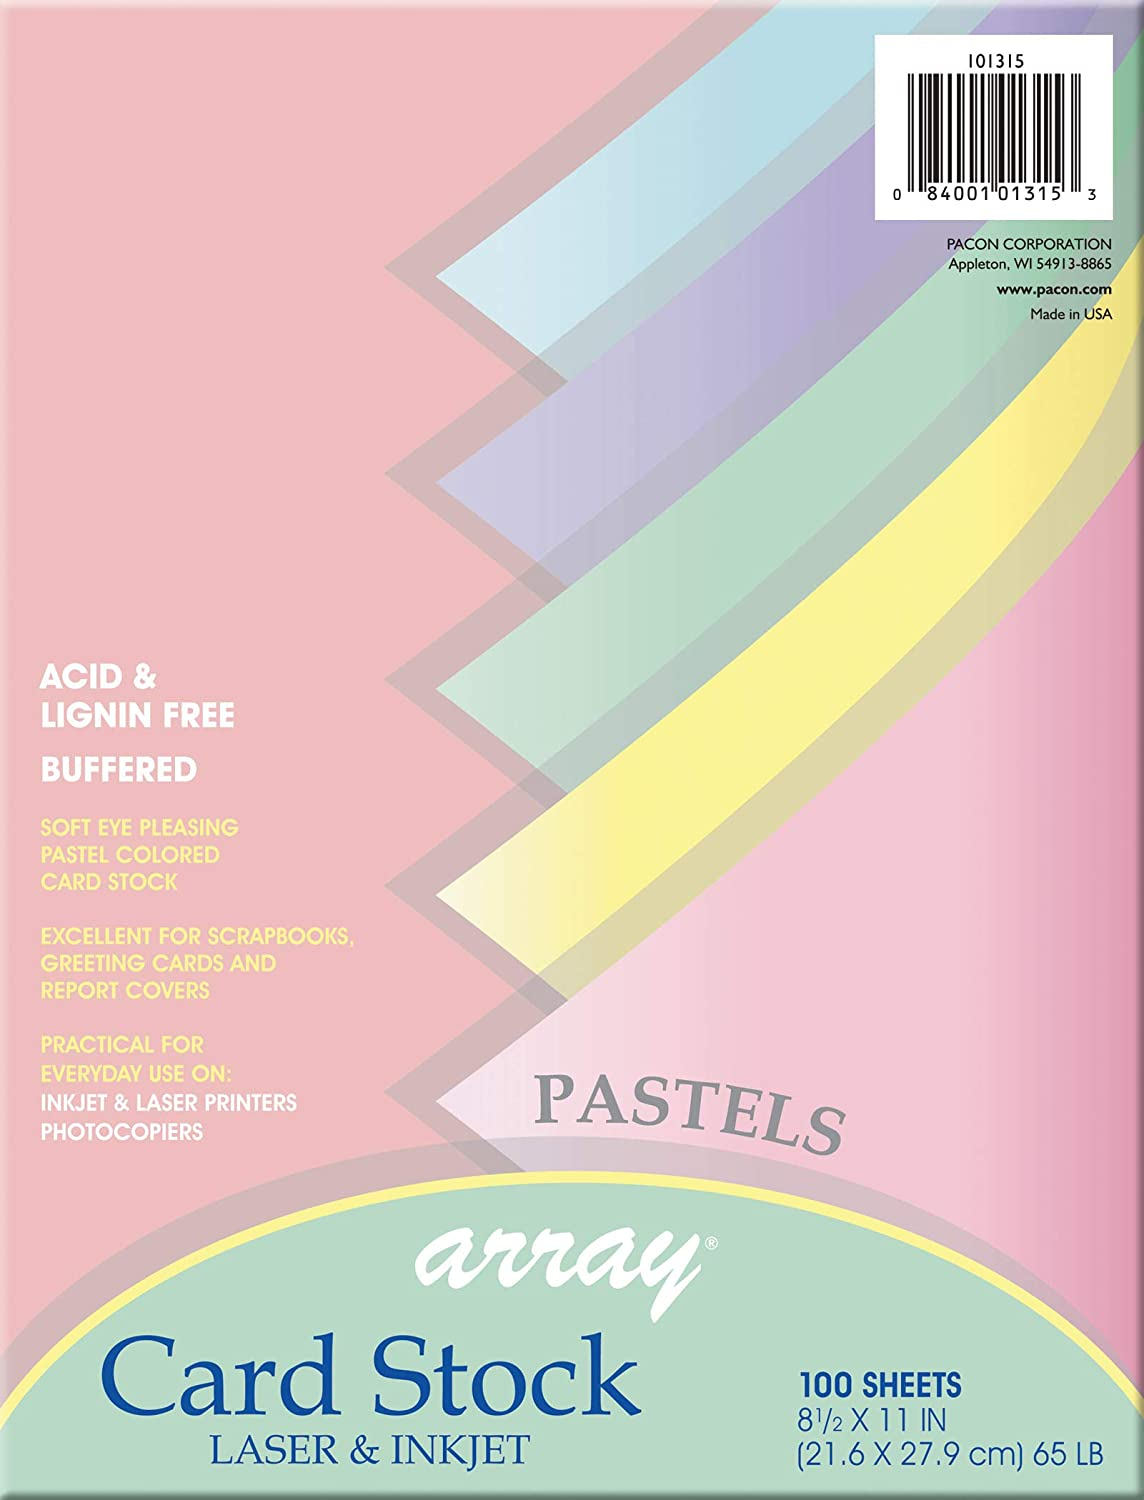 Array Card Stock Pacon Card Stock, 8 1/2 inches x 11 Inches, Pastel Assortment, 100 Sheets (101315), Assorted Pastel